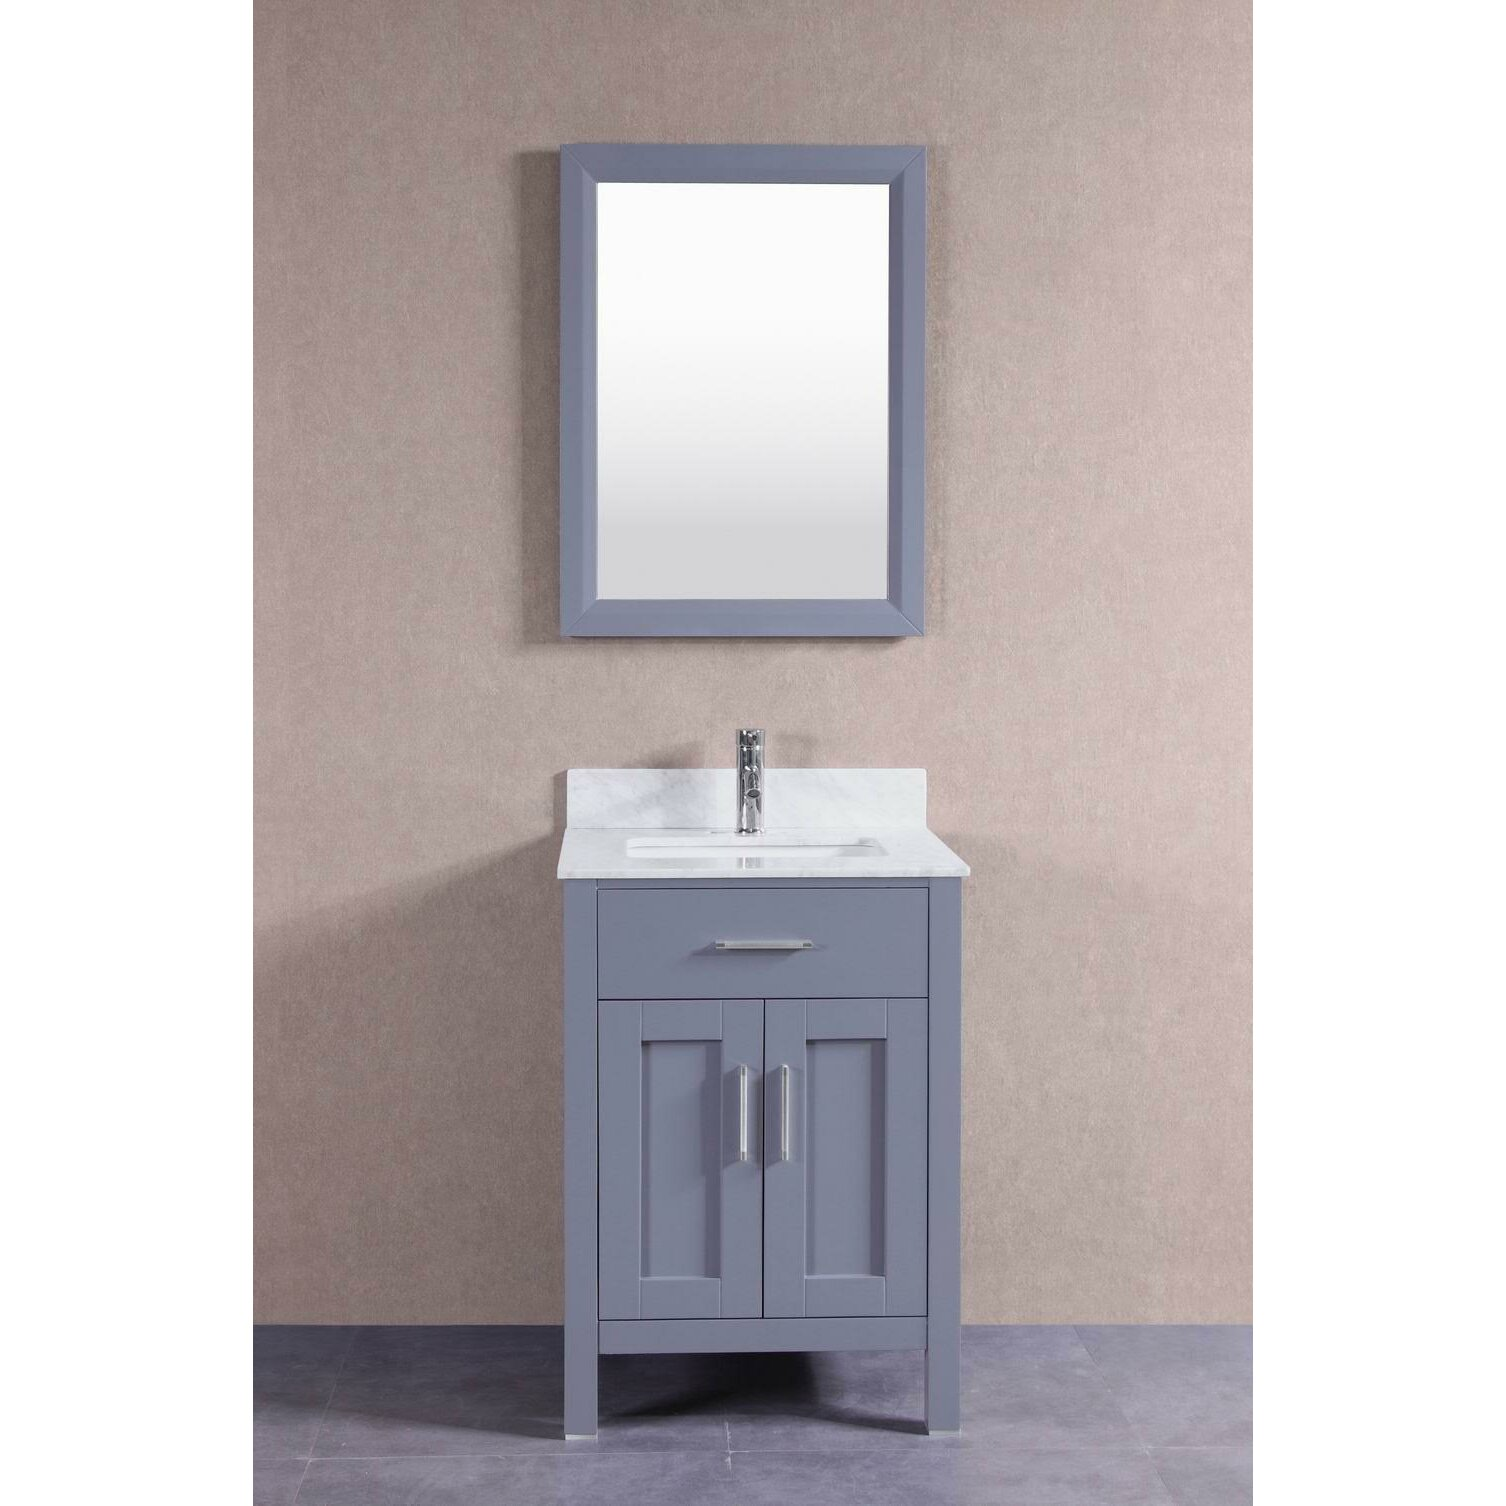 Belvederebath 24 single bathroom vanity set wayfair for Single bathroom vanity